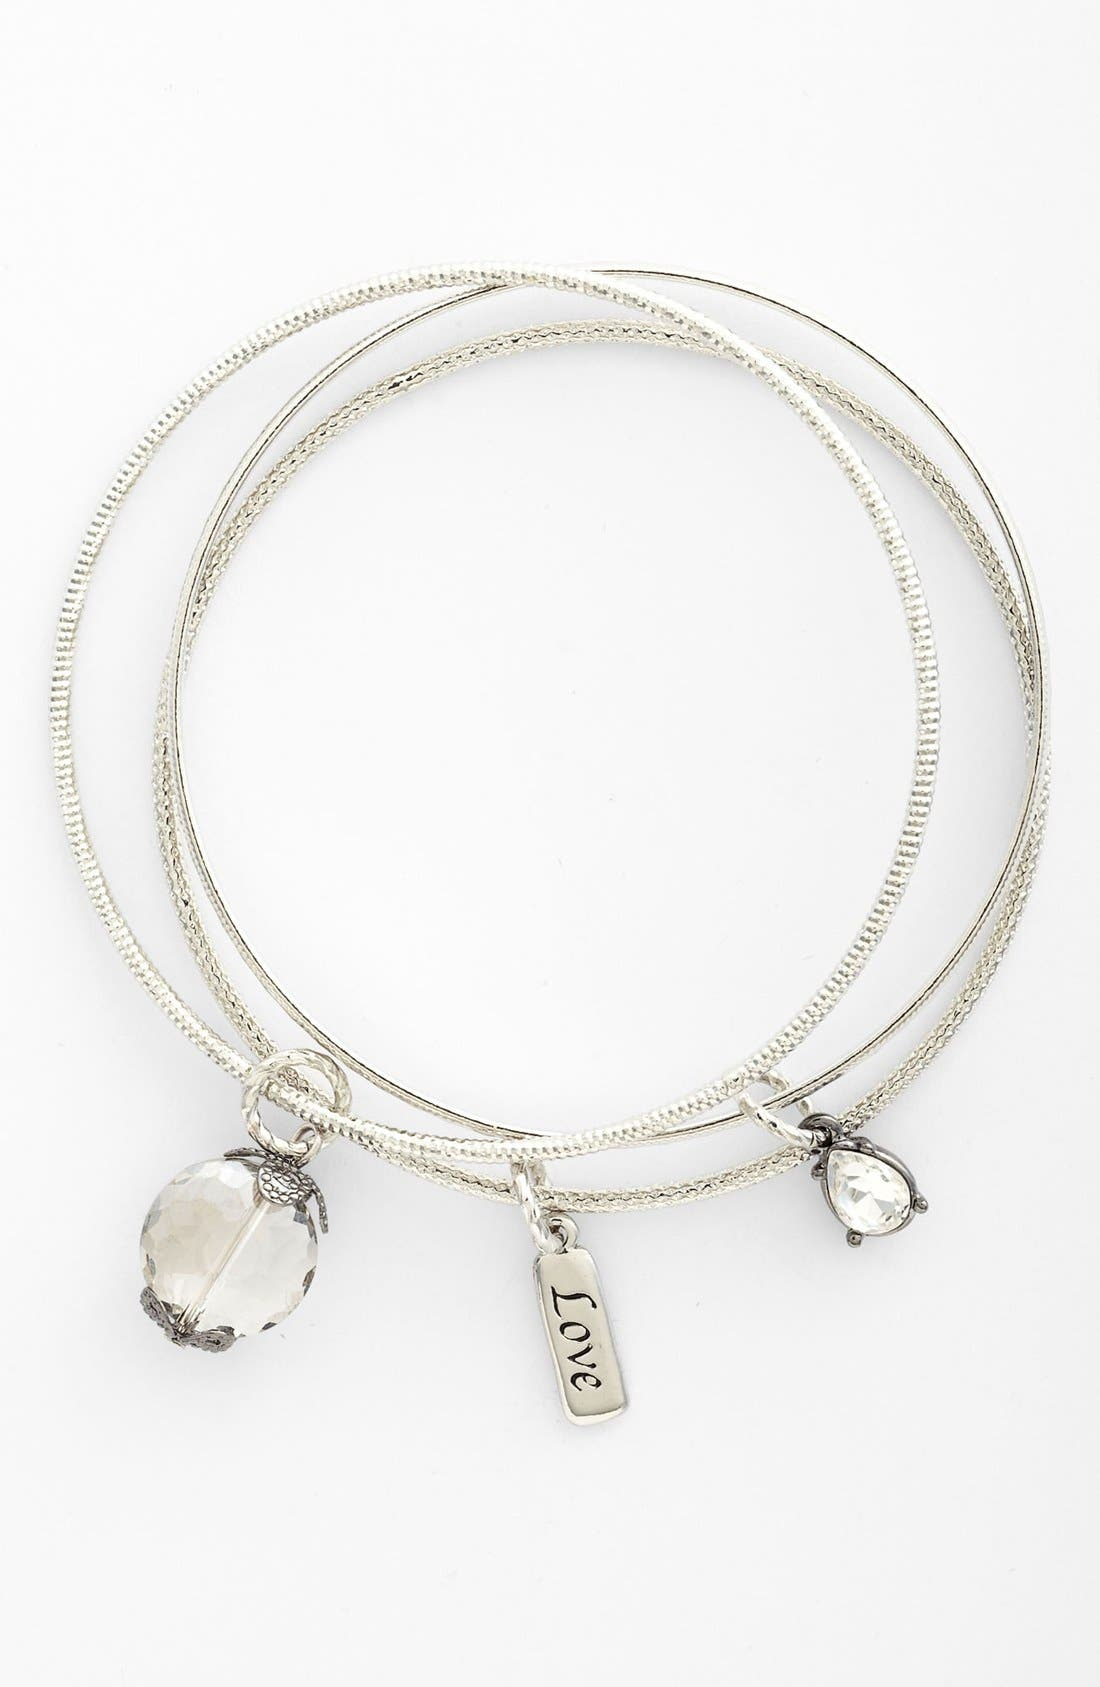 Main Image - Nordstrom 'Love Languages' Charm Bangles (Set of 3)